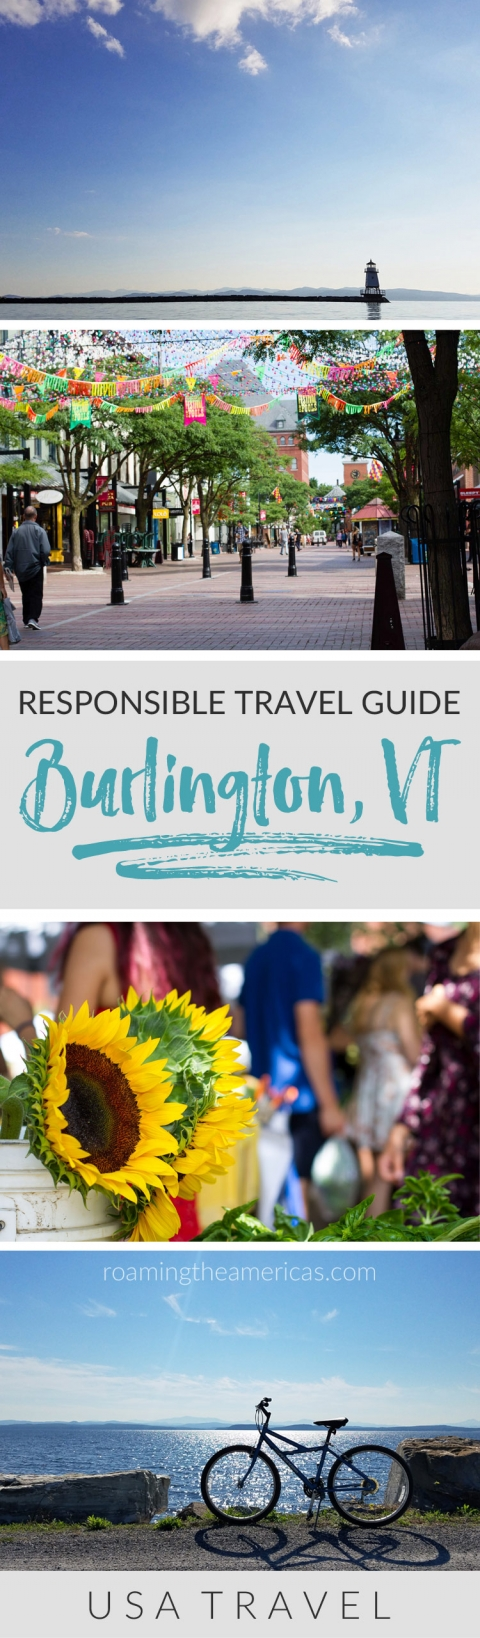 Vermont vacation | Vermont travel | Where to stay, eat, and things to do in Burlington, Vermont [USA]! Celebrate the Year of Sustainable Tourism with this responsible travel guide from #roamingtheamericas #vermont #newengland #bucketlist #ecotourism